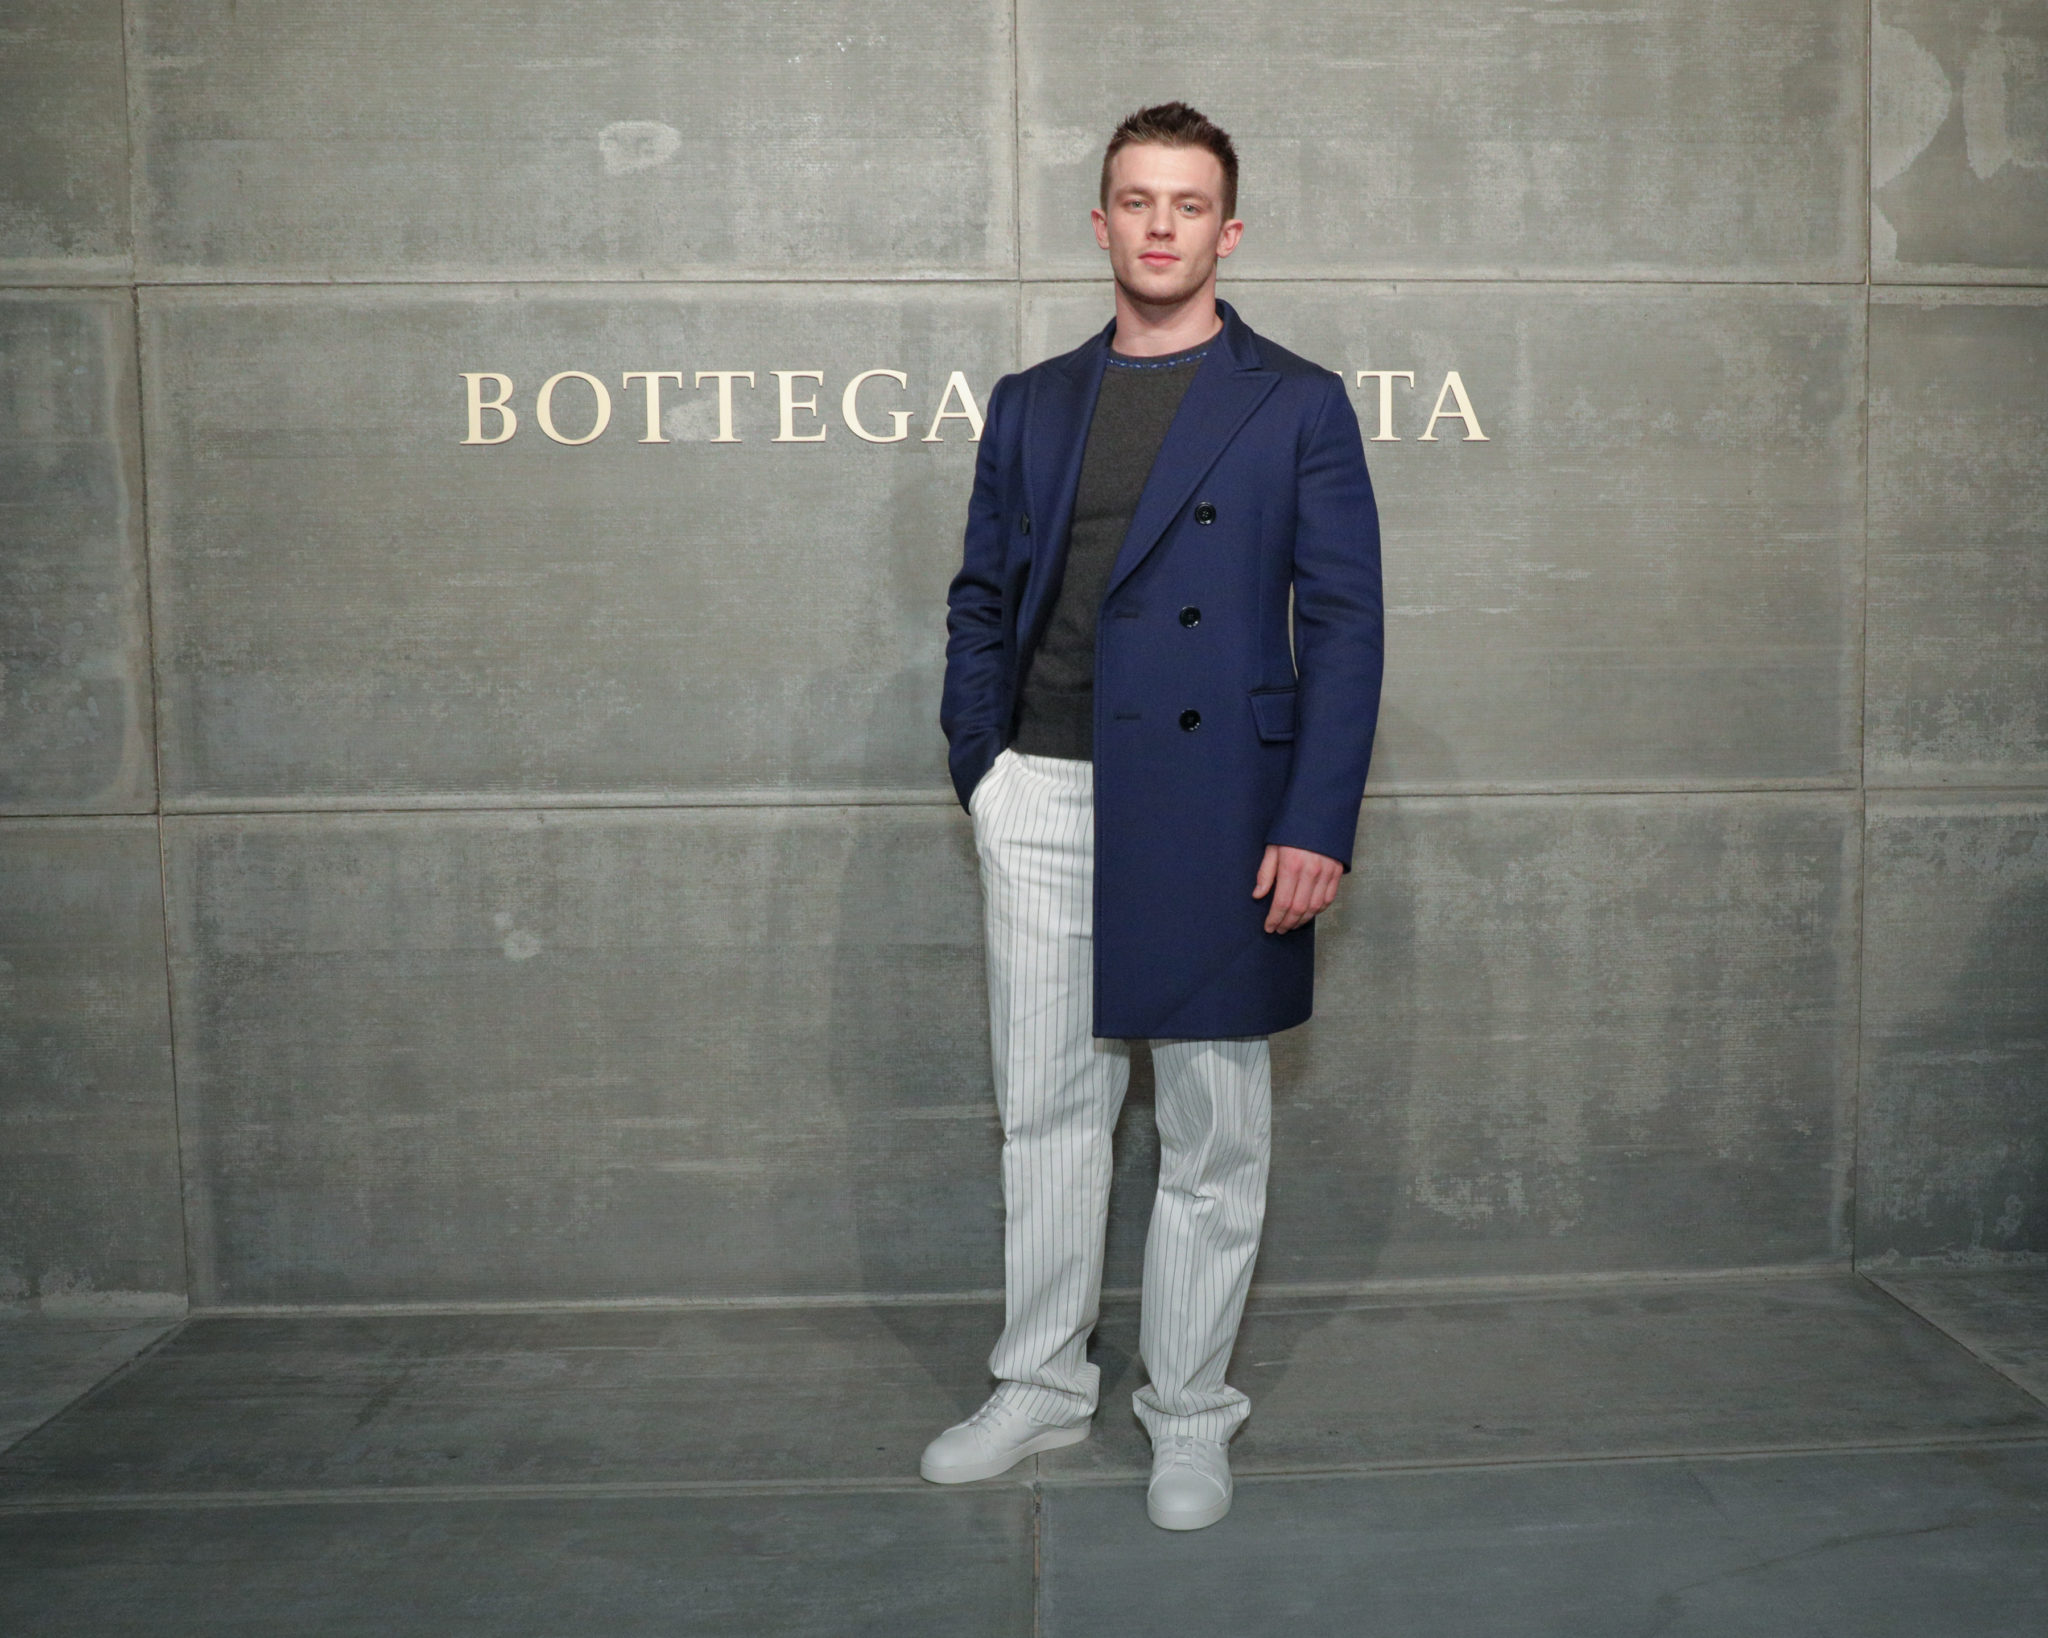 Jannis Niewohner, At the Bottega Veneta Fall Winter 2018 show at the American Stock Exchange in New York City